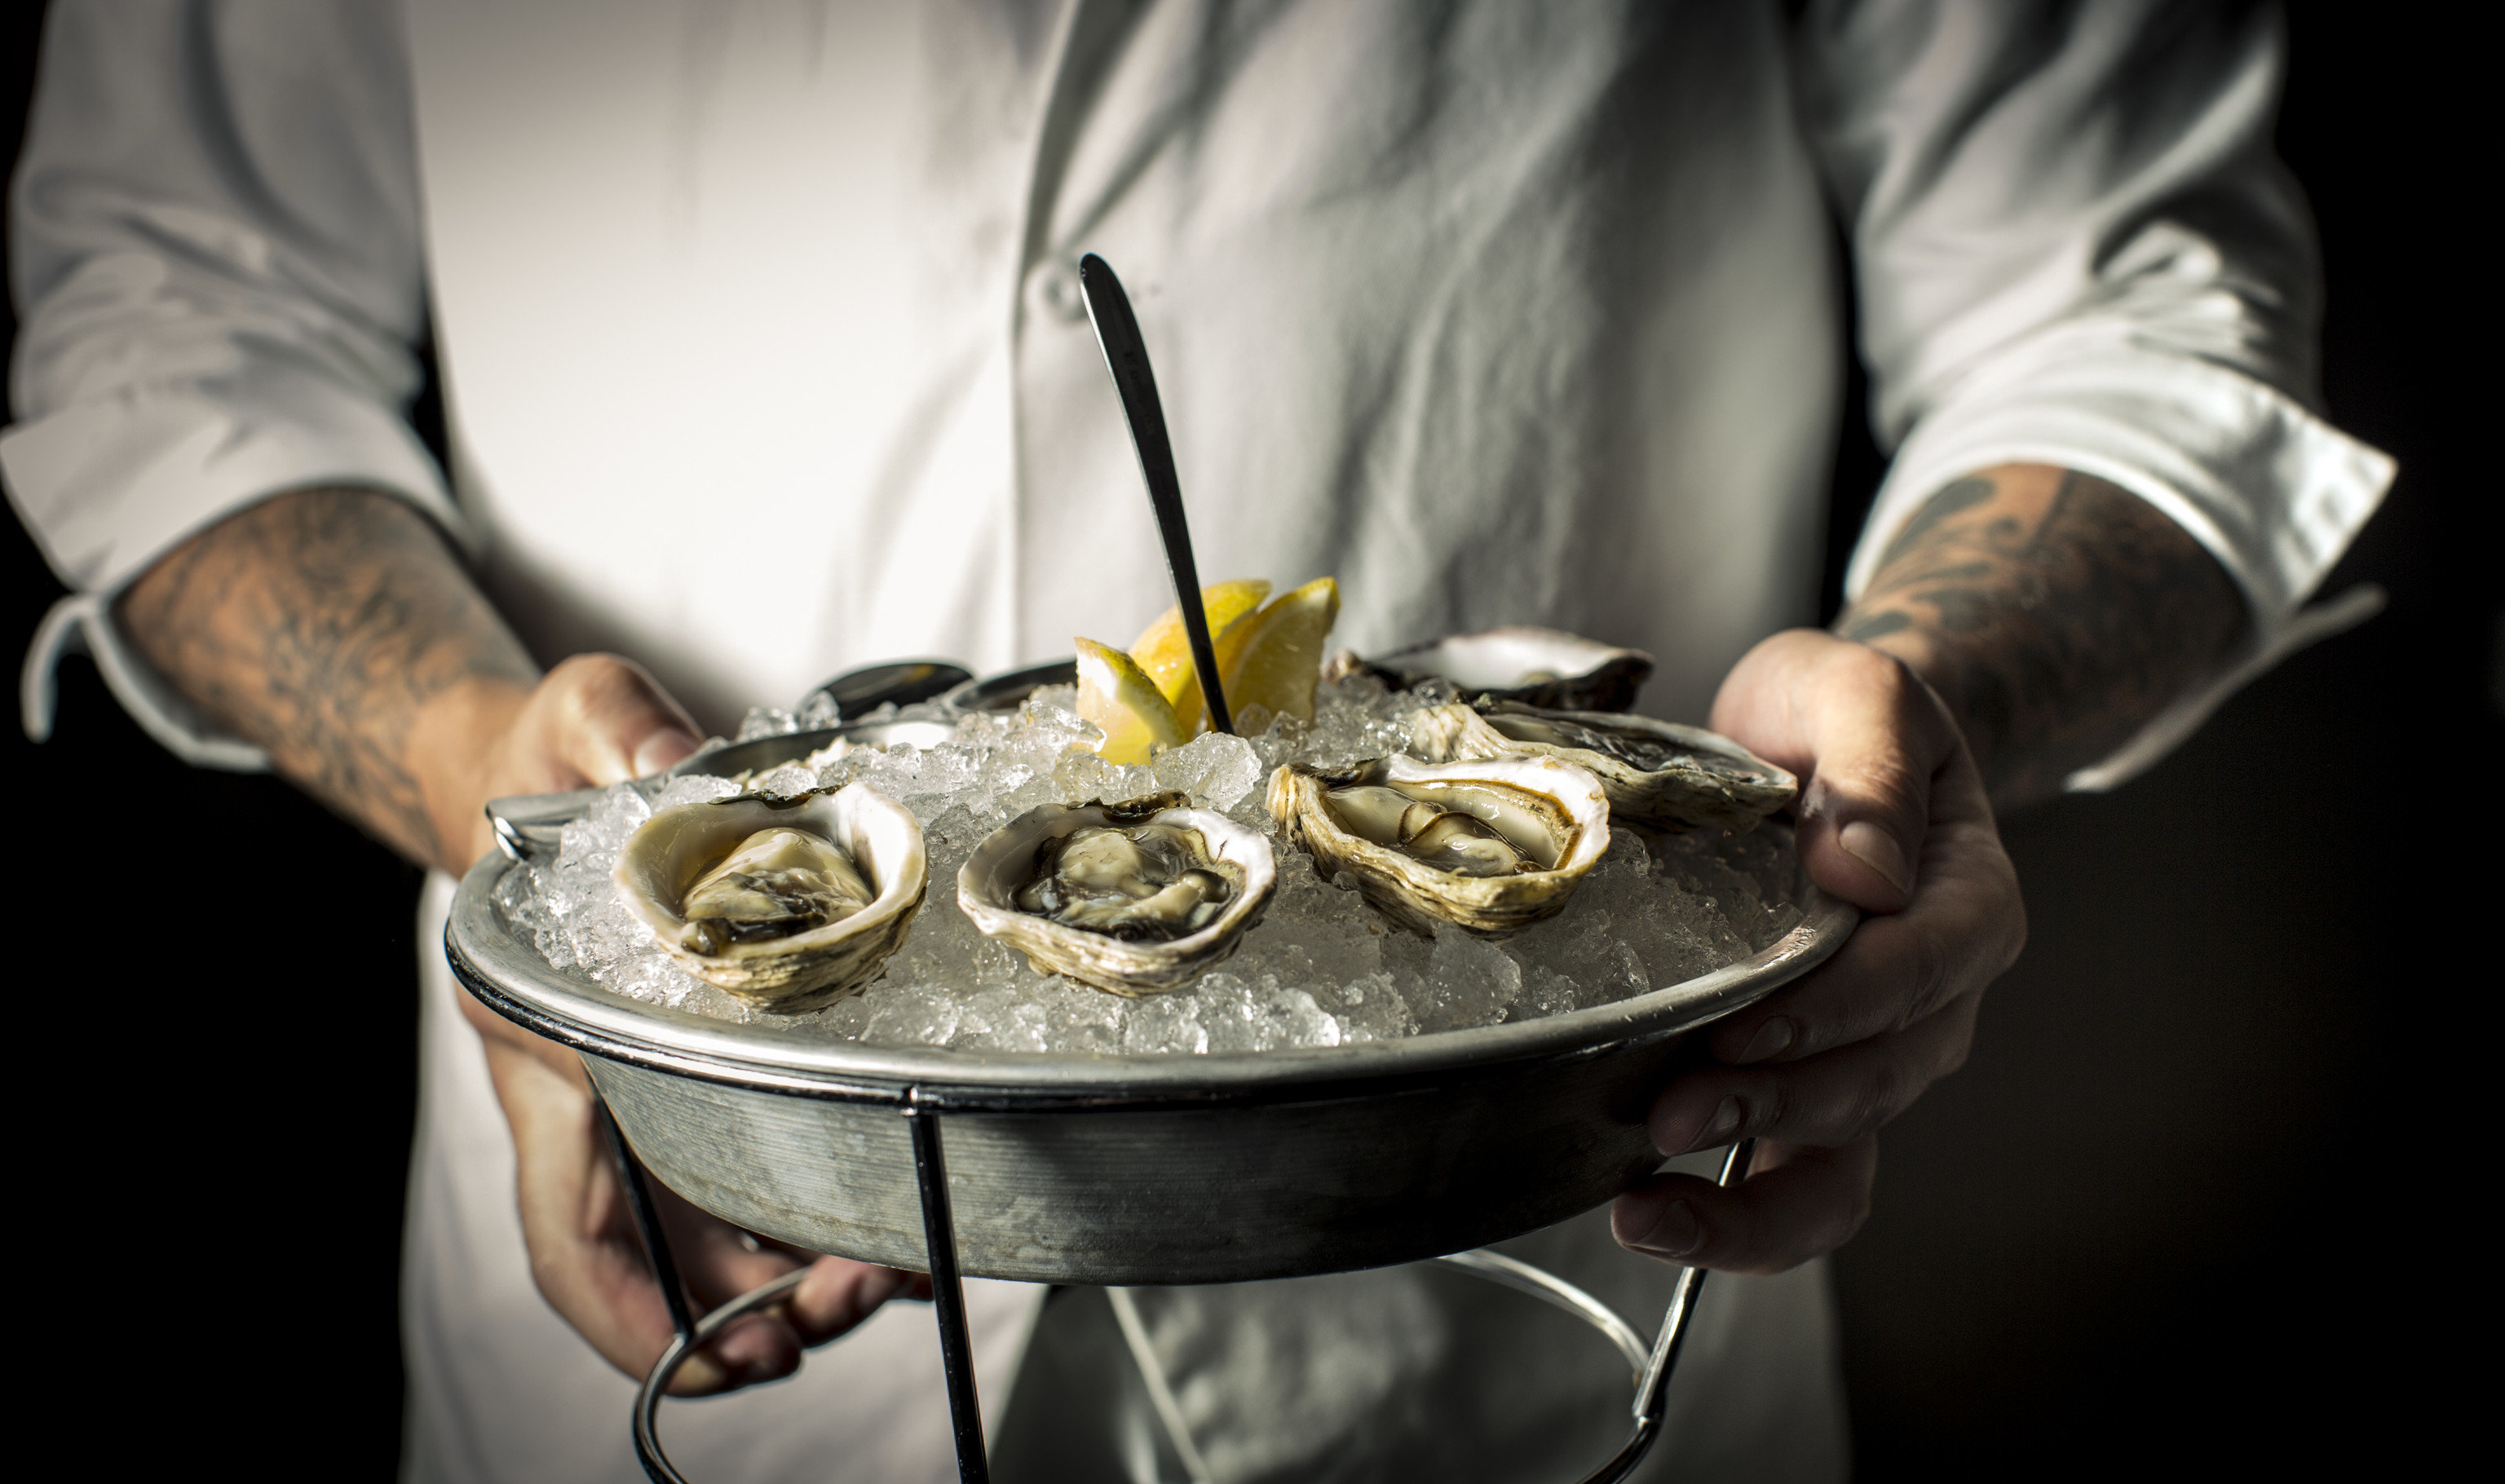 Food + Drink Travel Tips person oyster indoor food clams oysters mussels and scallops animal source foods Seafood mussel preparing pan cooking